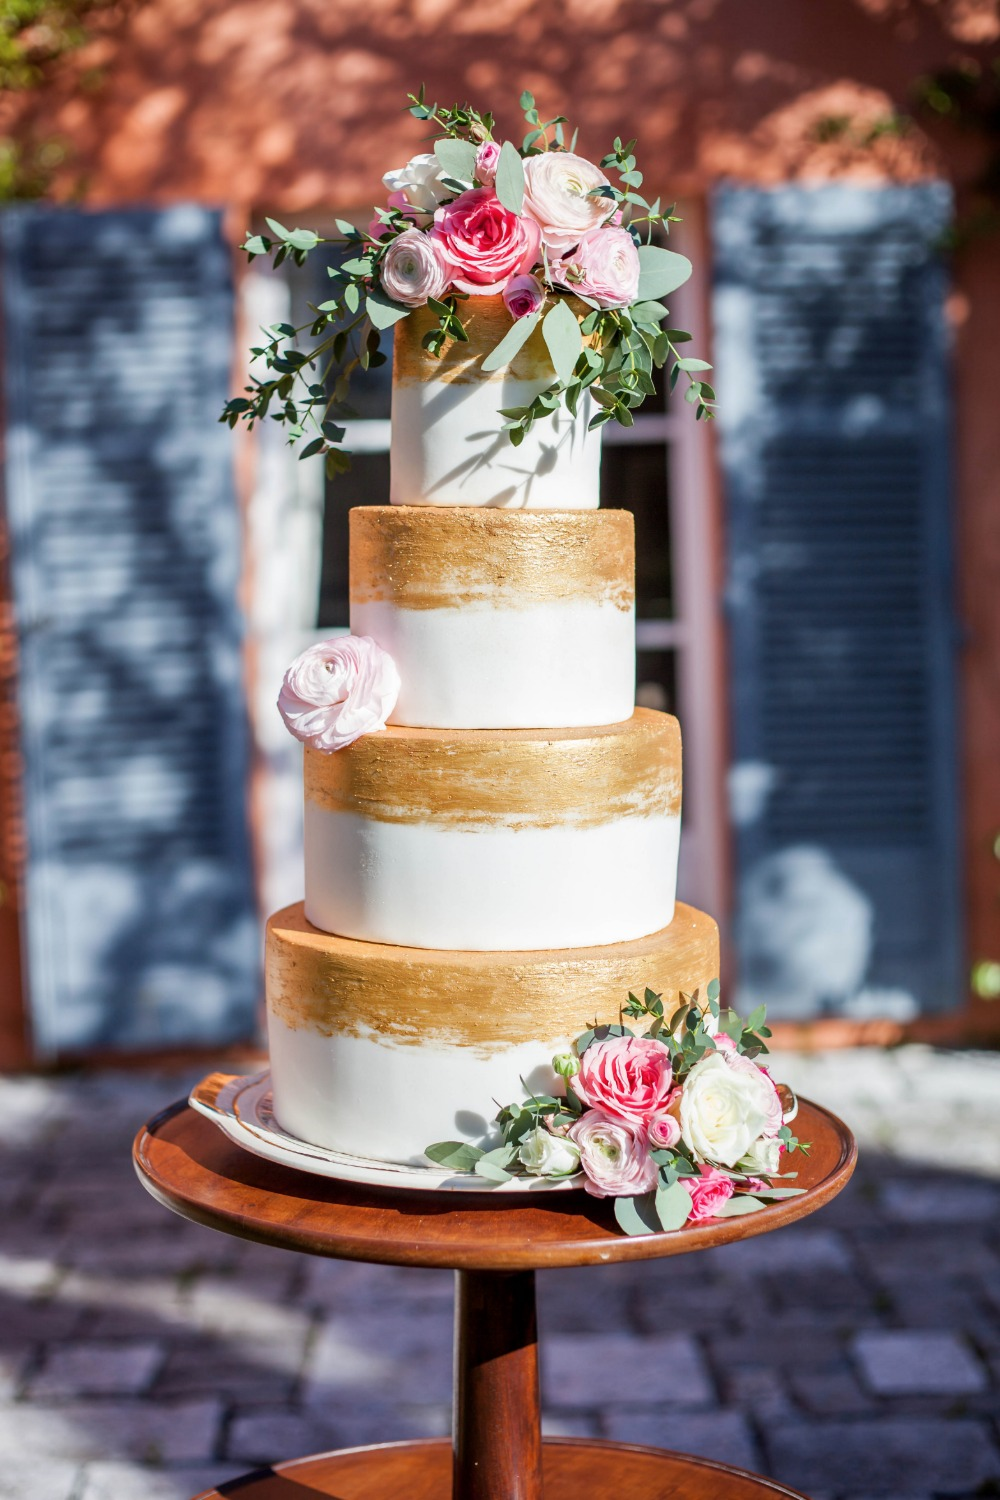 Gold and white wedding cake with pink roses